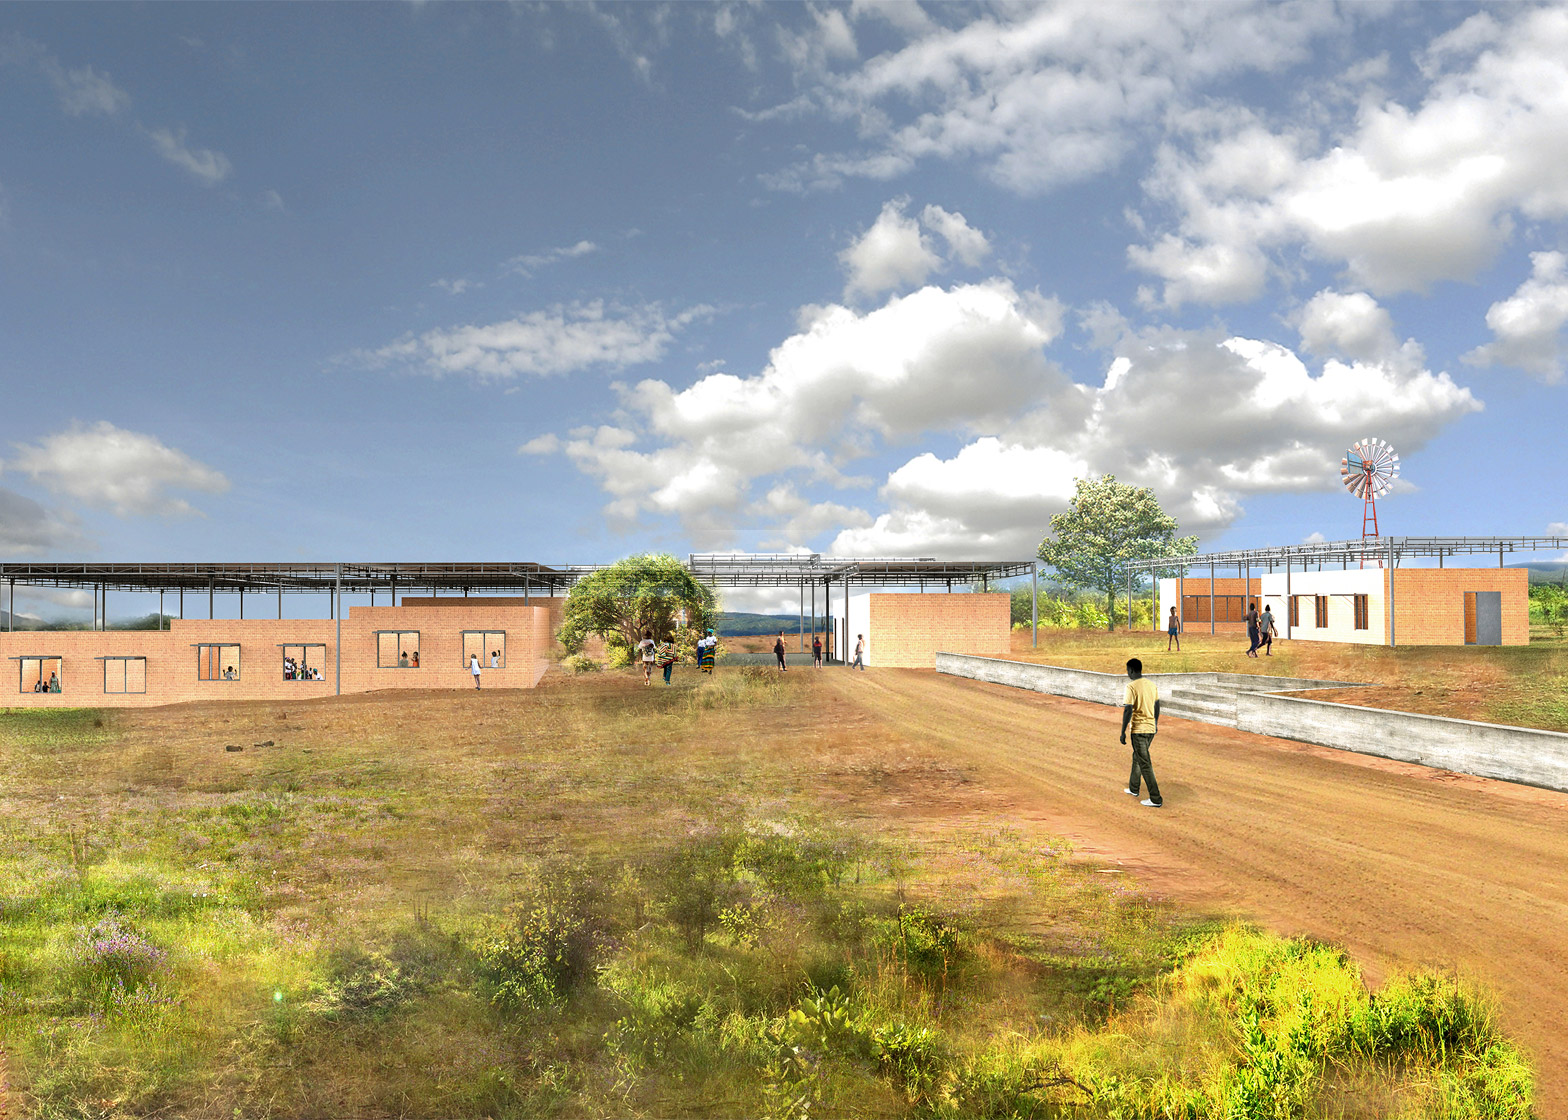 Selldorf Architects to design school in Zambia